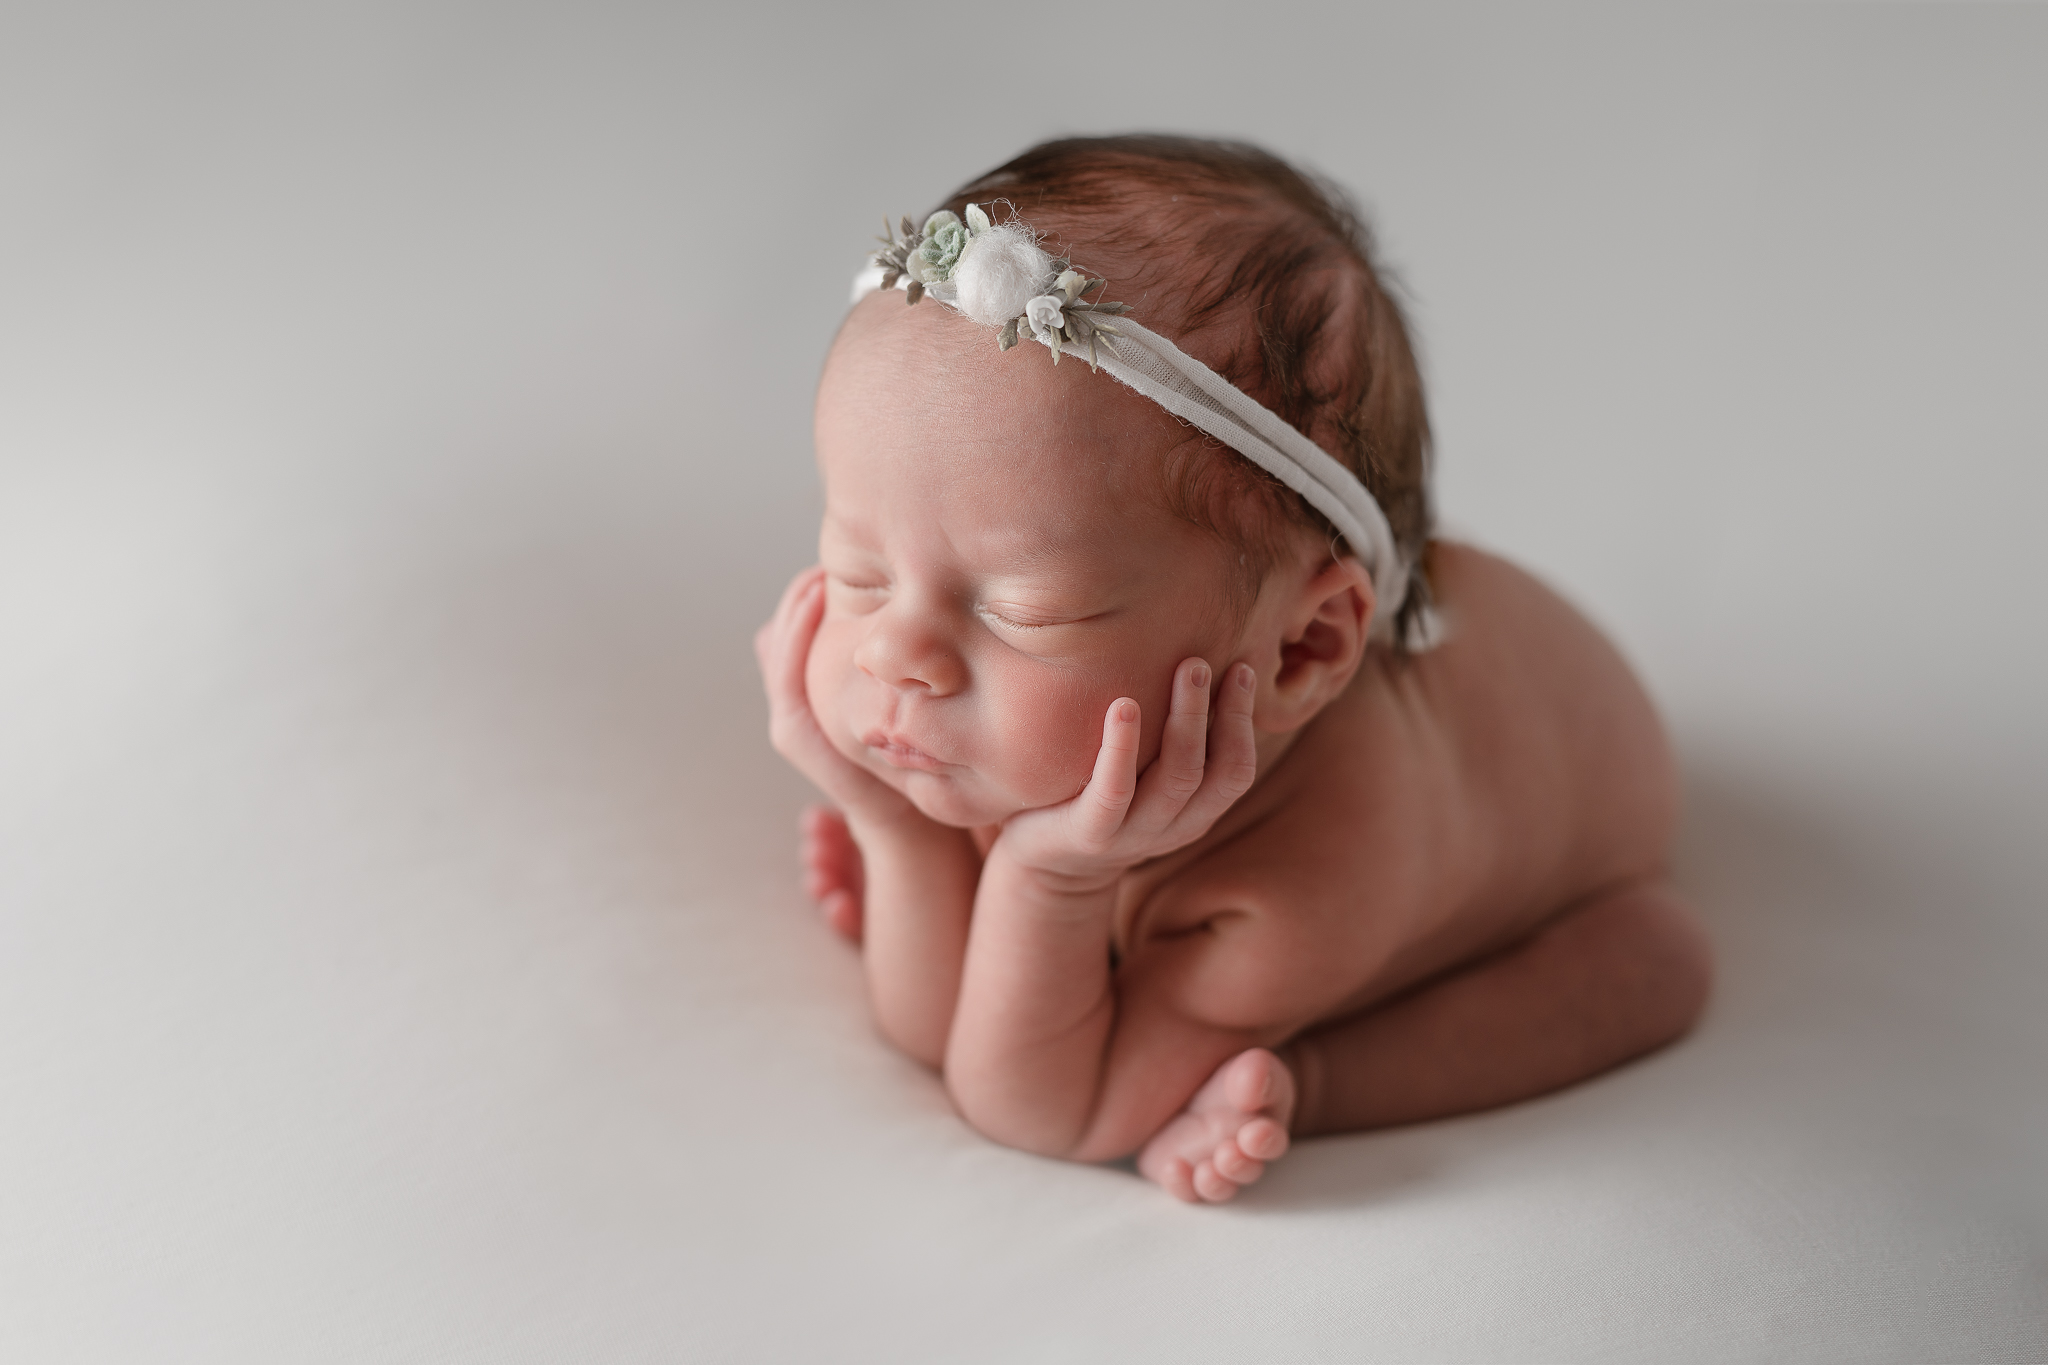 Newborn347NaomiLuciennePhotography032019-Edit.jpg